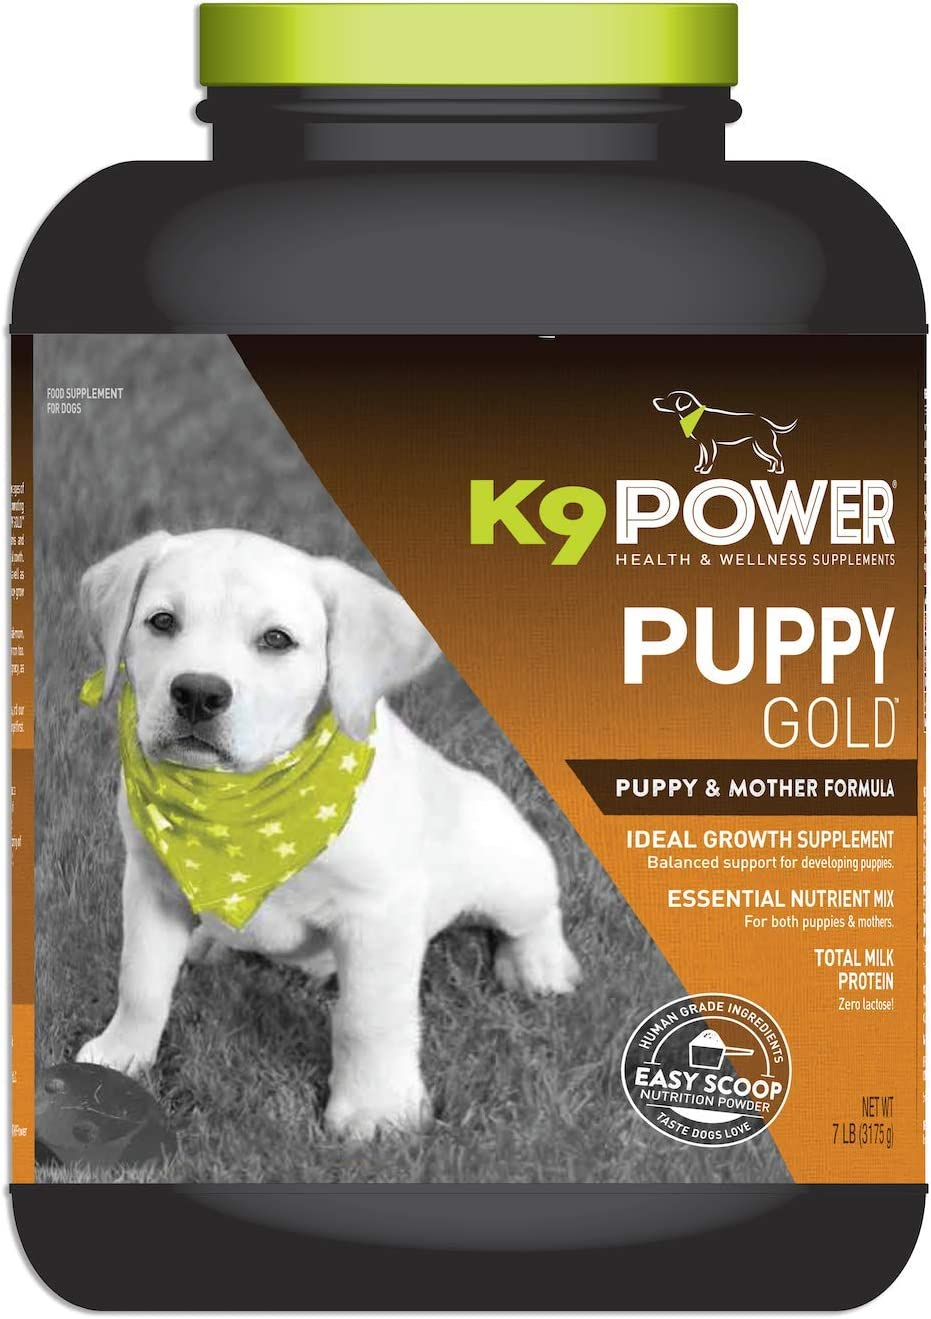 K9 Power – Puppy Gold – Nutritional Supplement for Growing Puppies Nursing Mothers – Targets Skeletal Structure, Muscular Formation, Organ Development